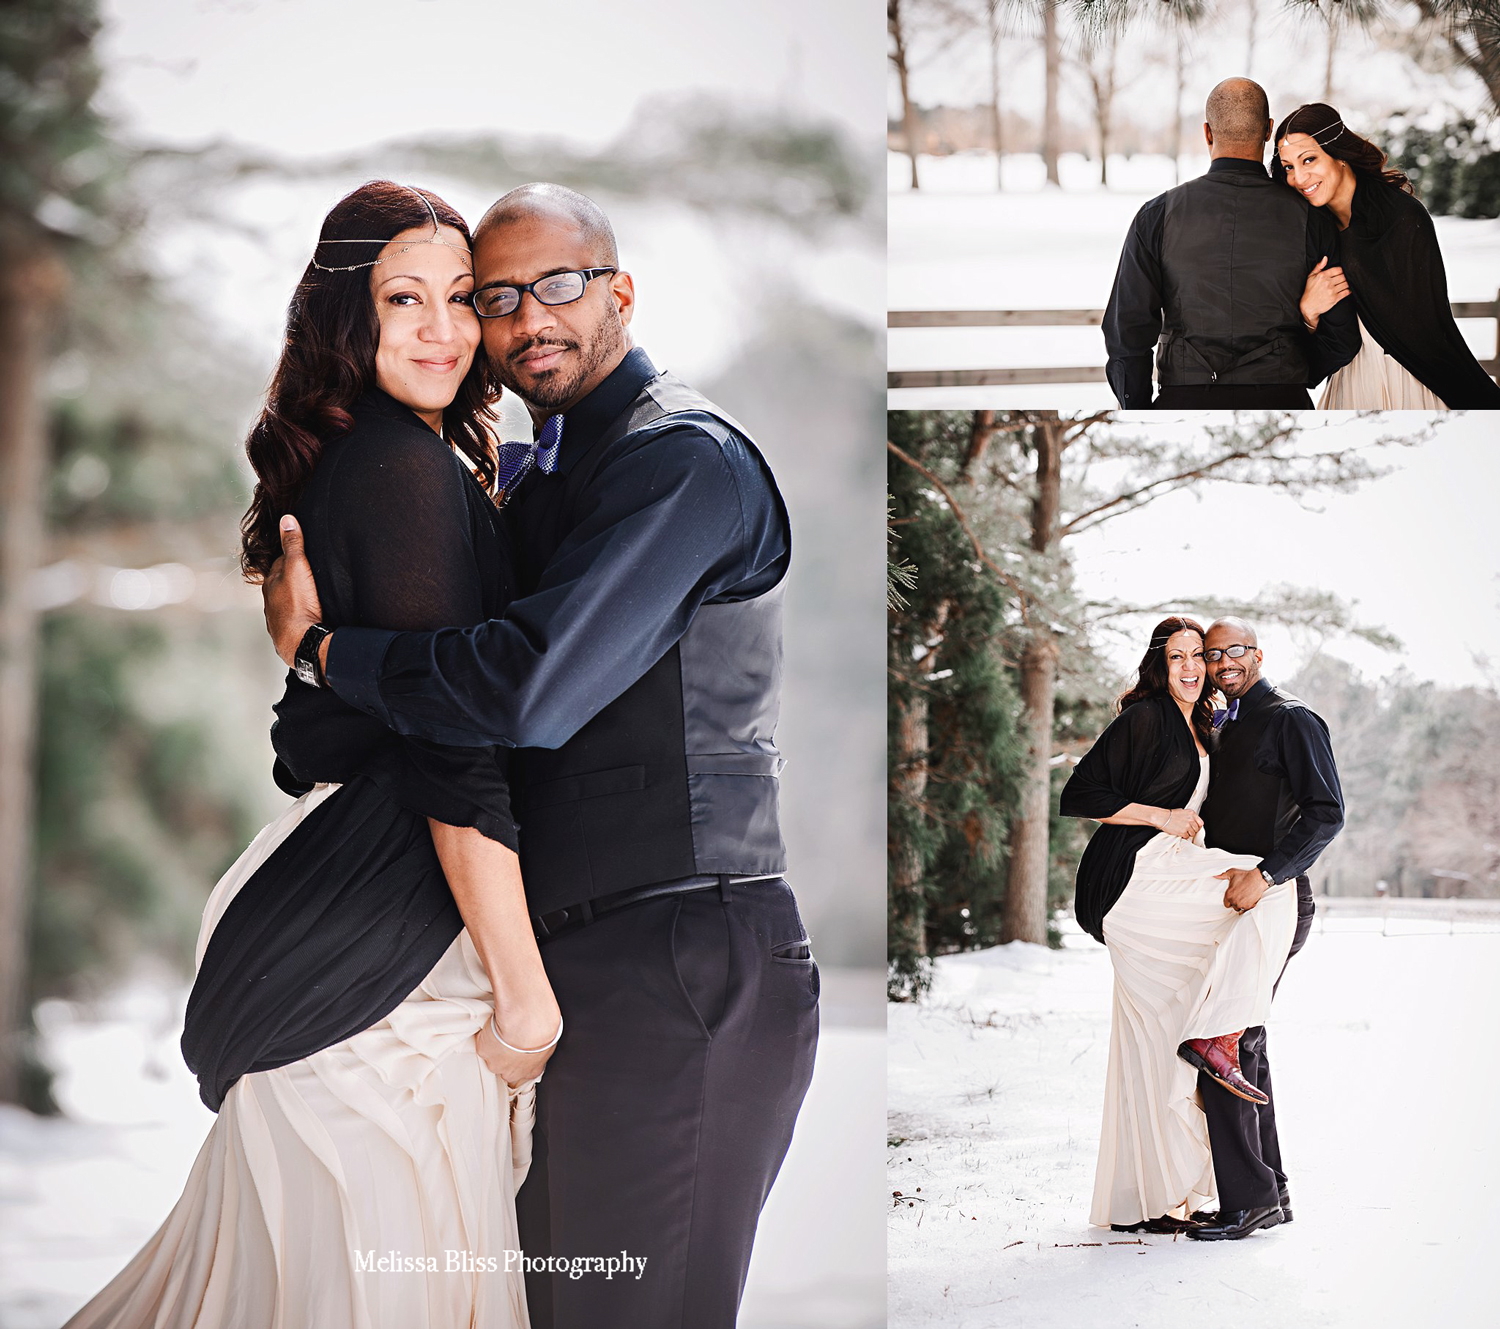 beautiful-snow-day-wedding-portraits-in-virginia-beach-by-melissa-bliss-photography-norfolk-wedding-photographer.jpg